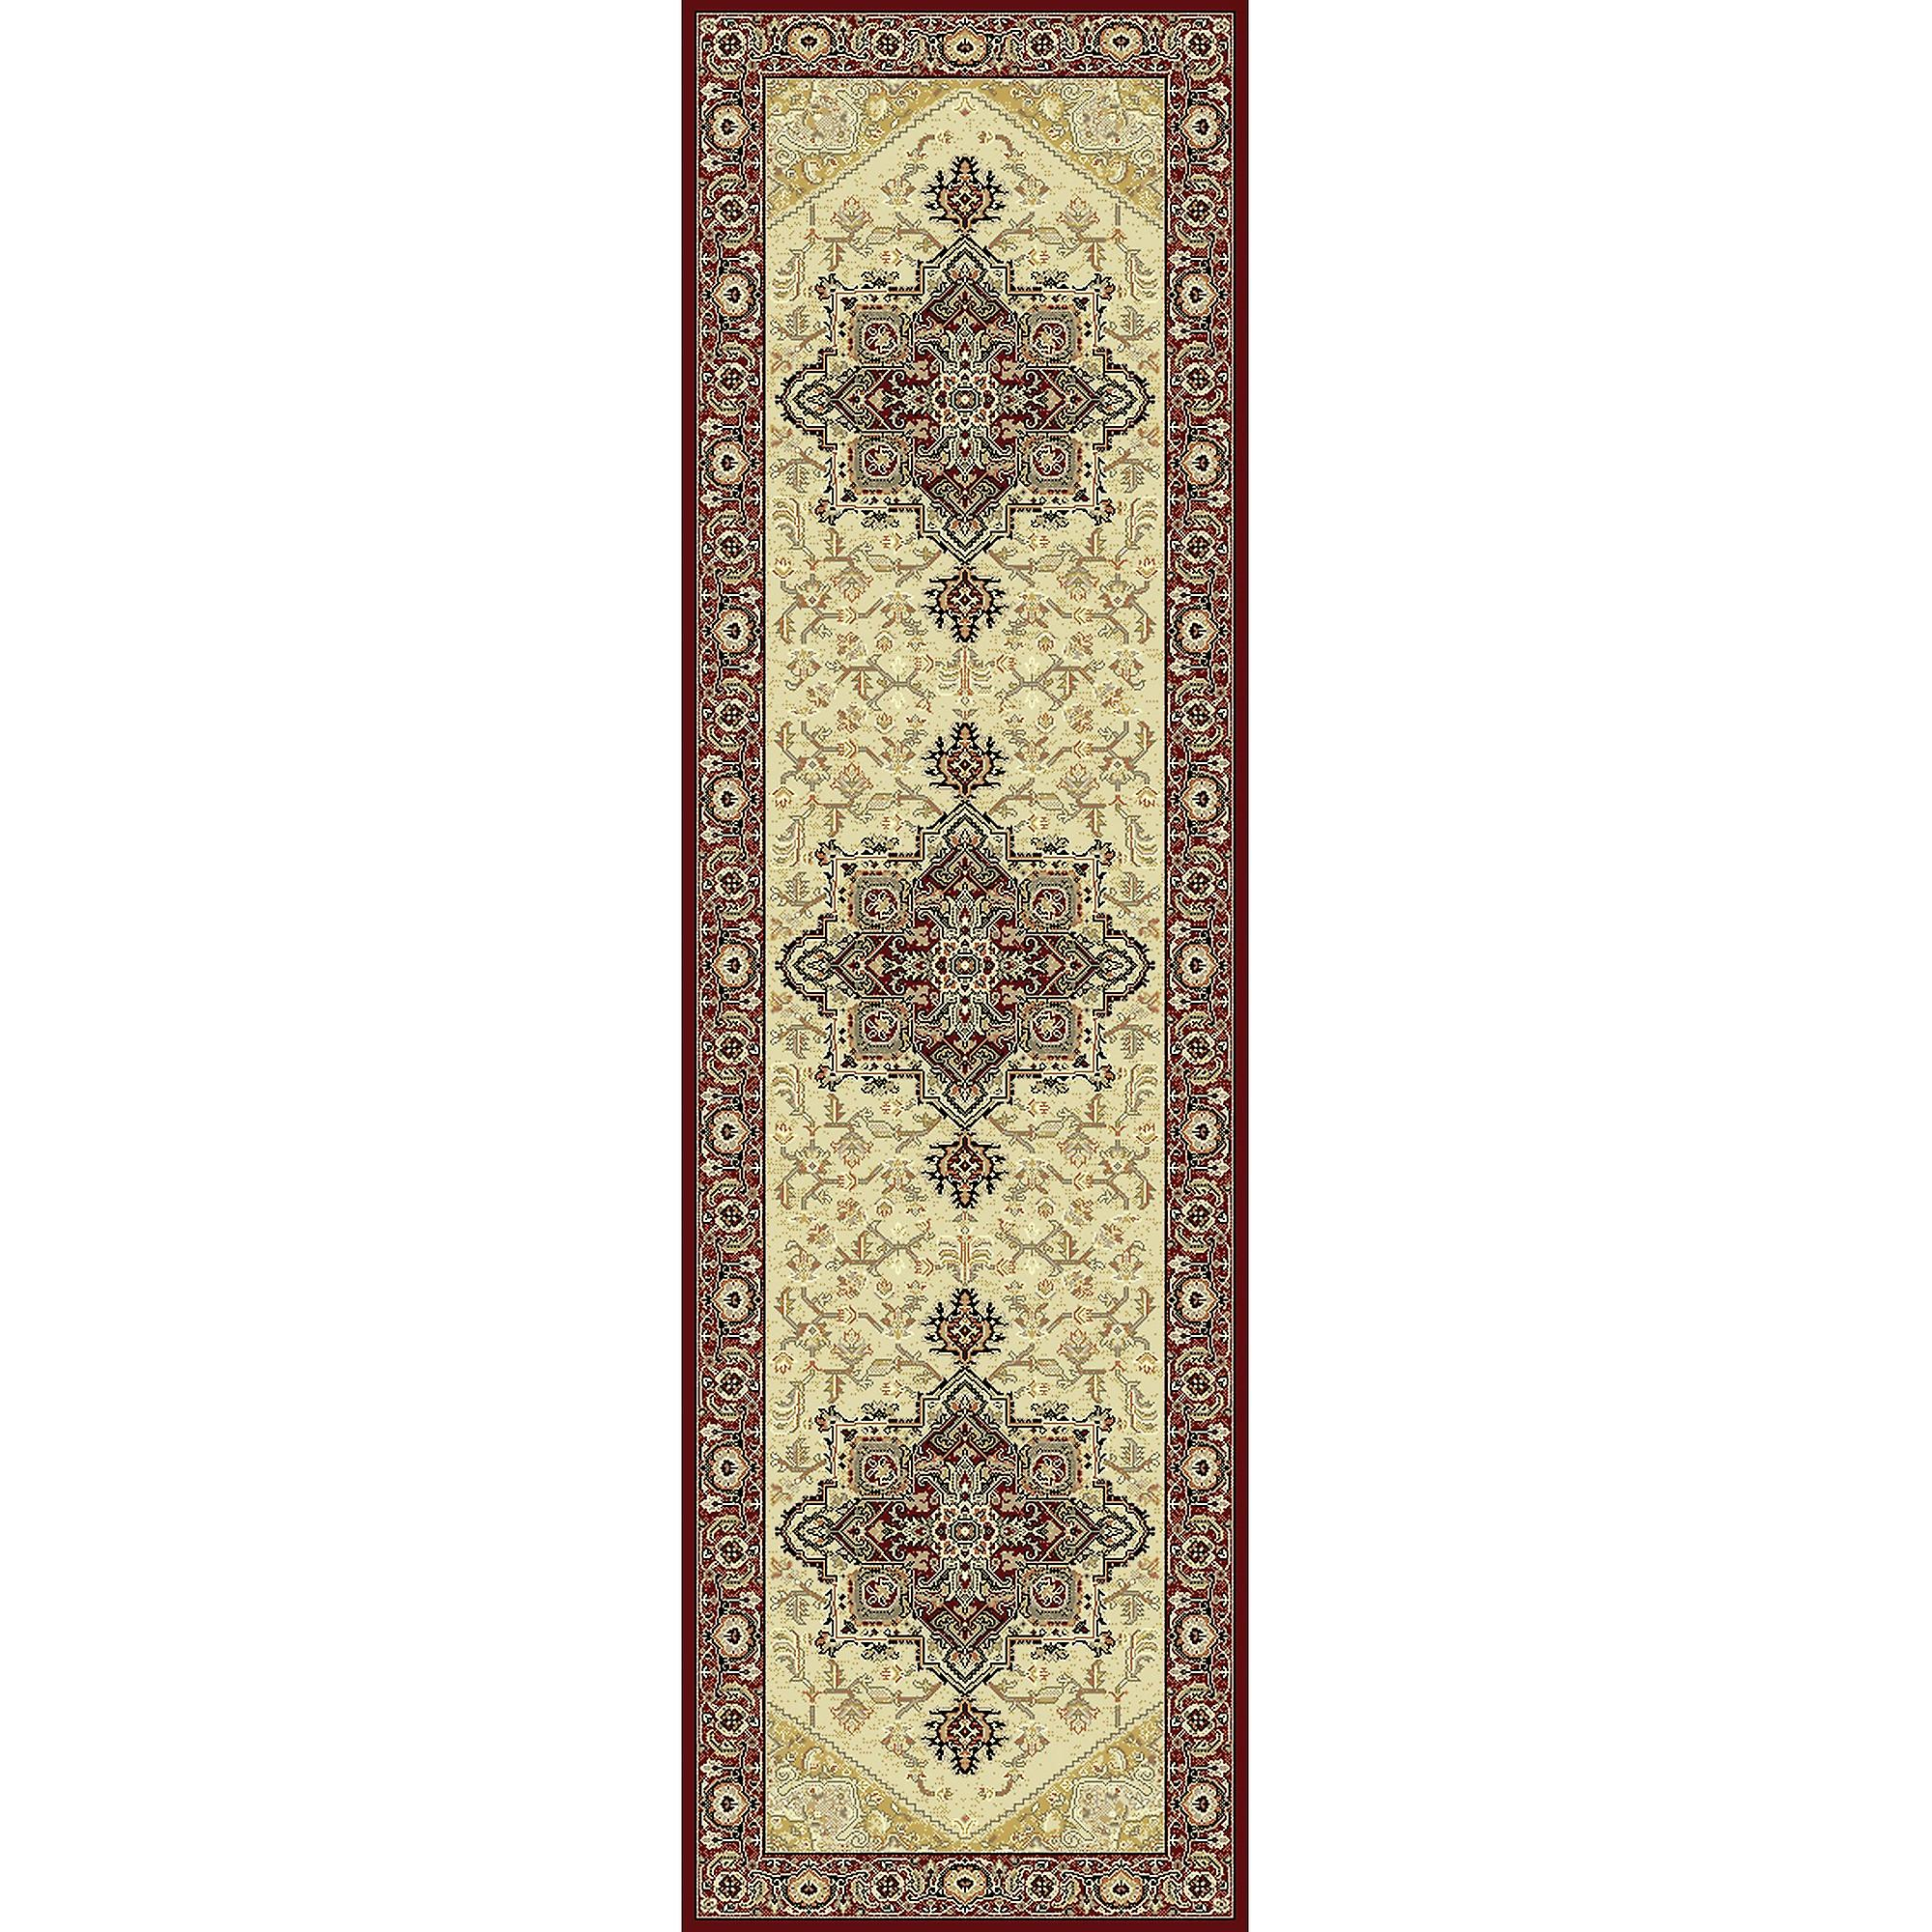 Noble Art courirner 65140 191 In Beige And rouge